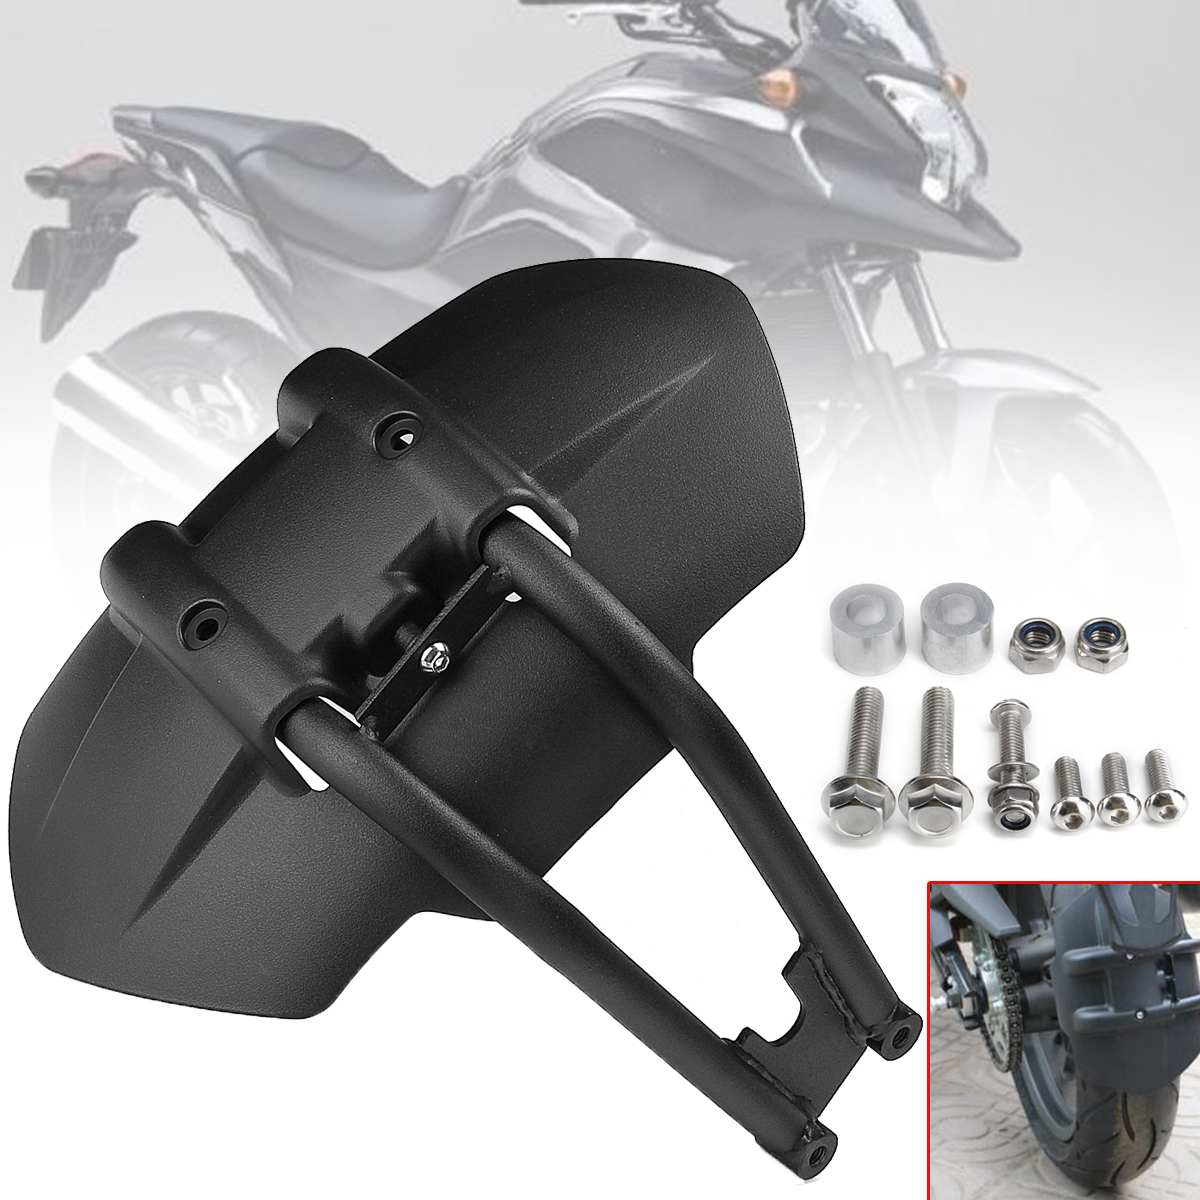 Universal Motorcycle Rear Fenders Flare Mud Flap Mudguard Splash Guard Rear Wheel Cover for Kawasaki BMW Suzuki Yamaha Honda